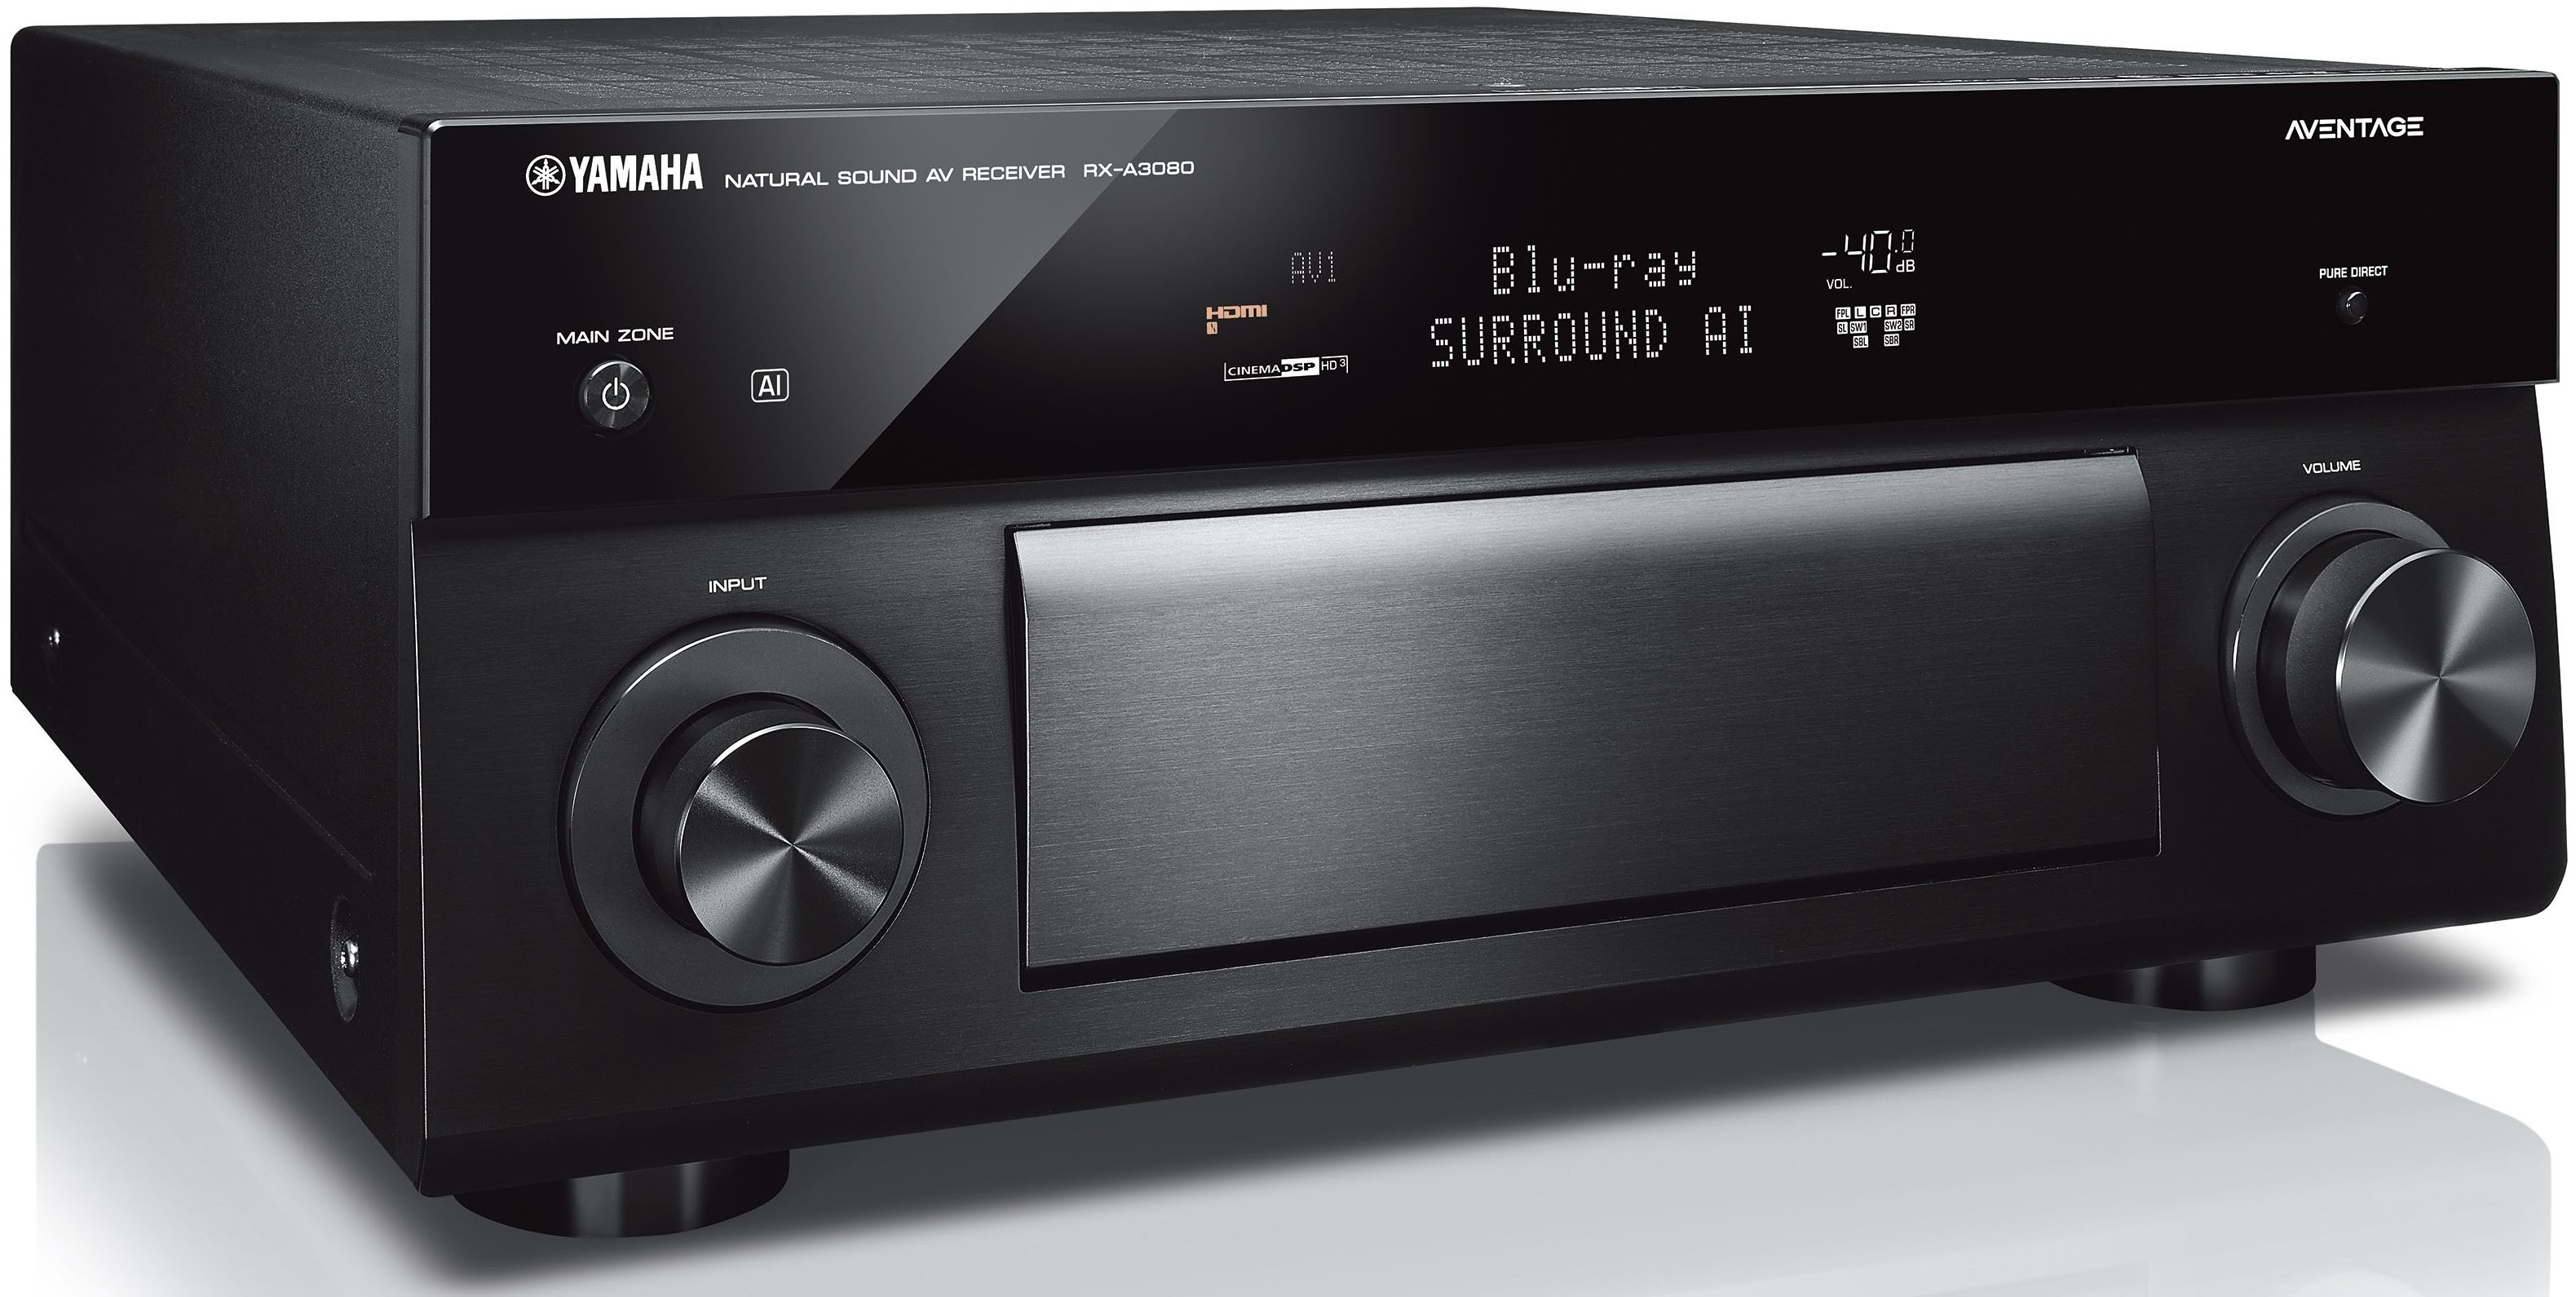 yamaha aventage rx a3080 av receiver av concept audio. Black Bedroom Furniture Sets. Home Design Ideas